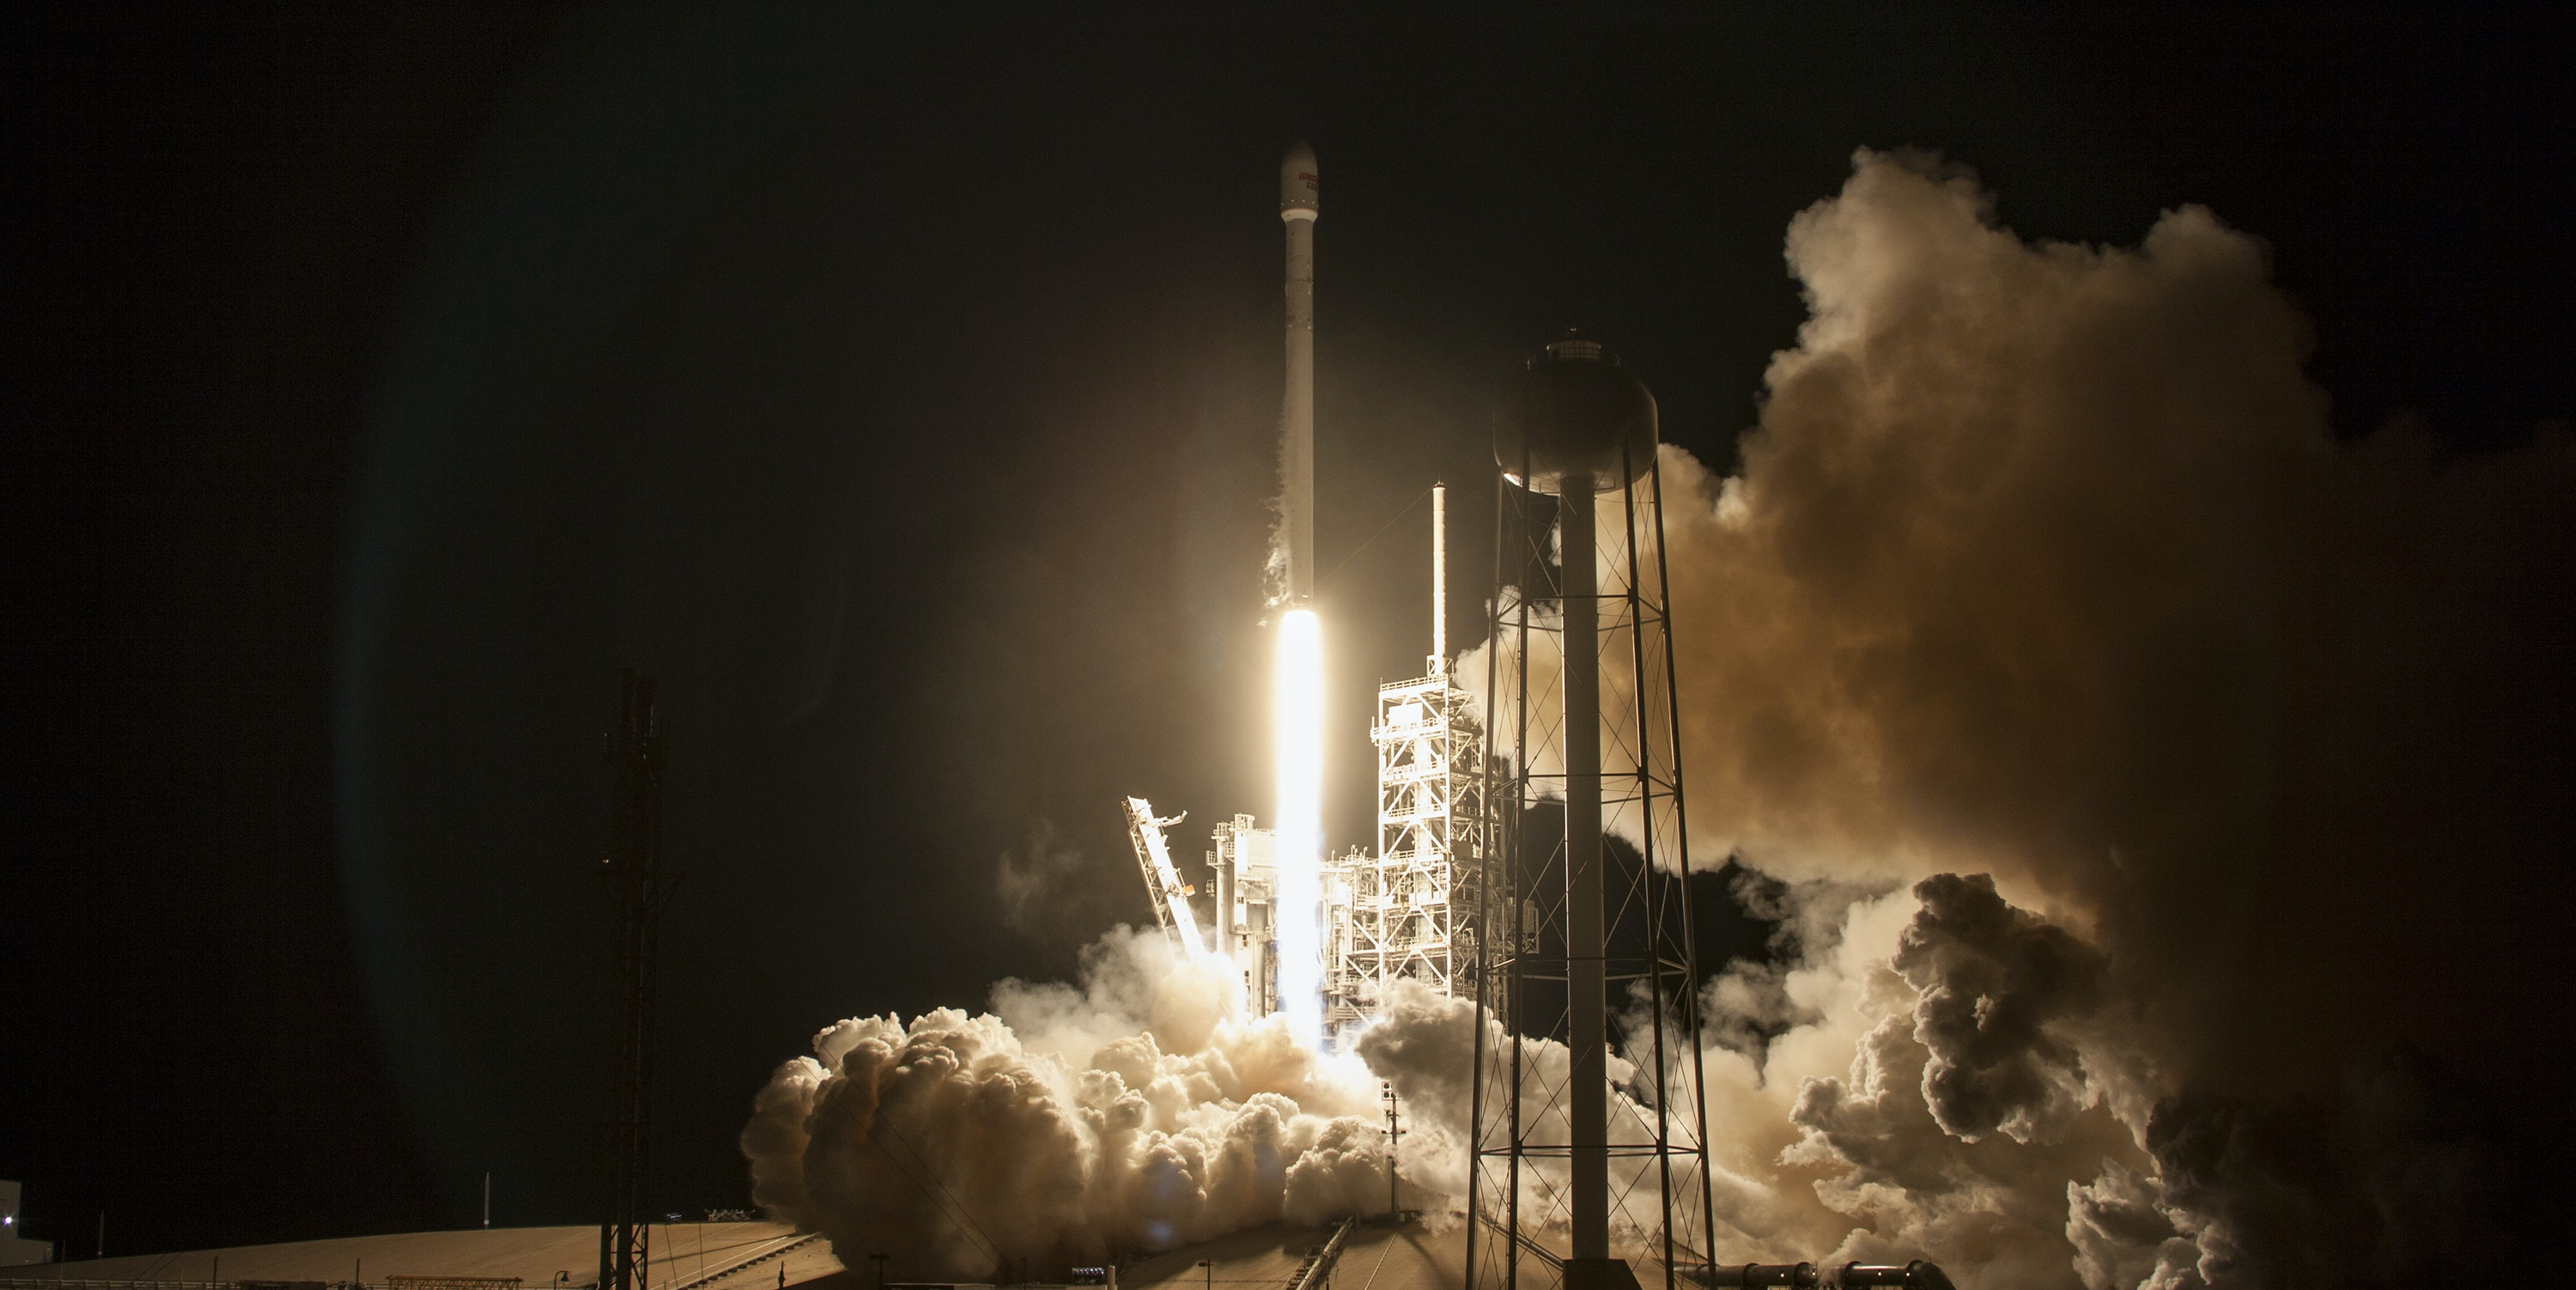 On Thursday, SpaceX launched the EchoStar 23 communications satellite into orbit.